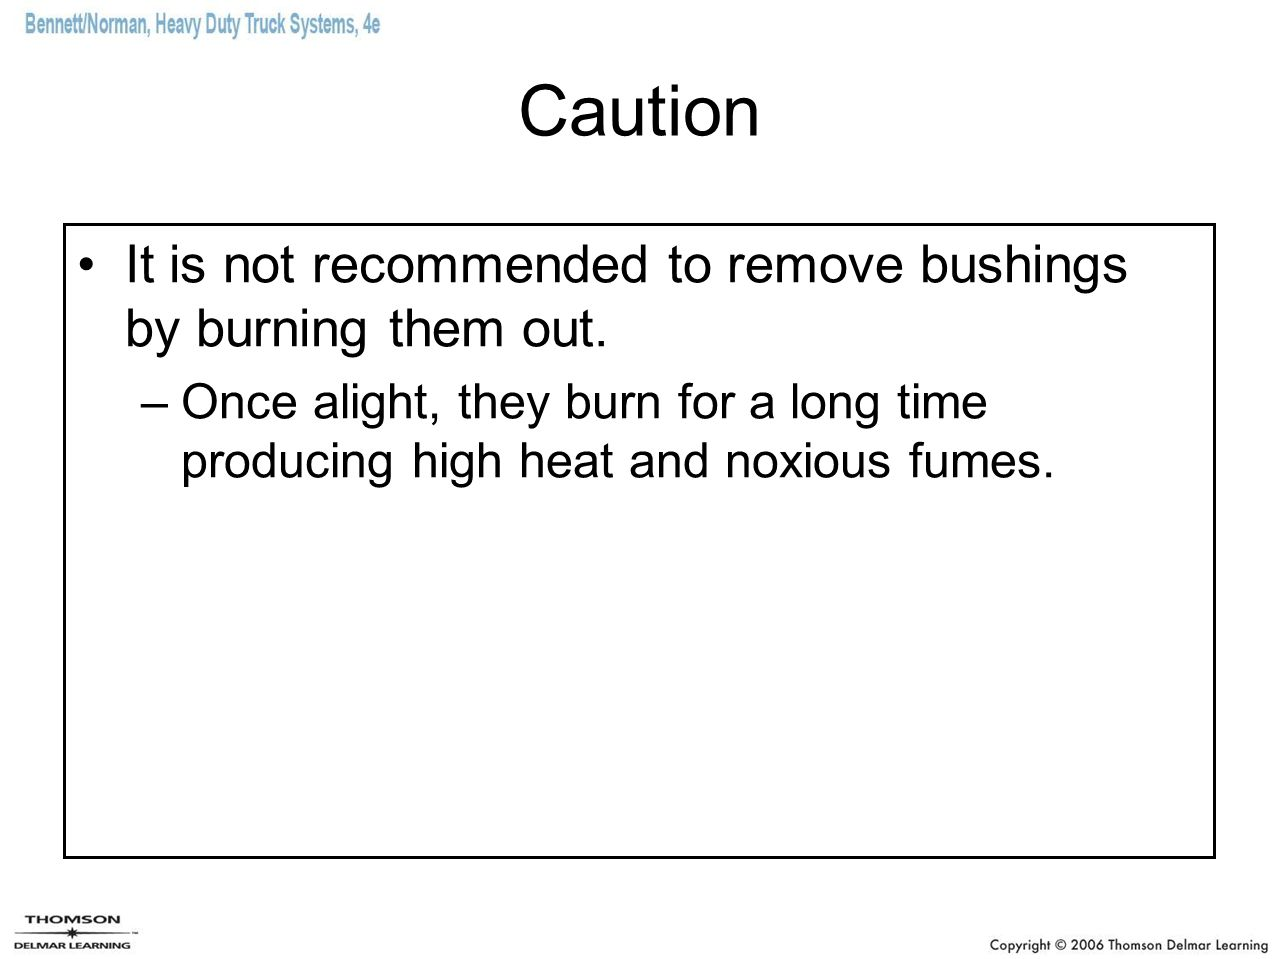 Caution It is not recommended to remove bushings by burning them out.